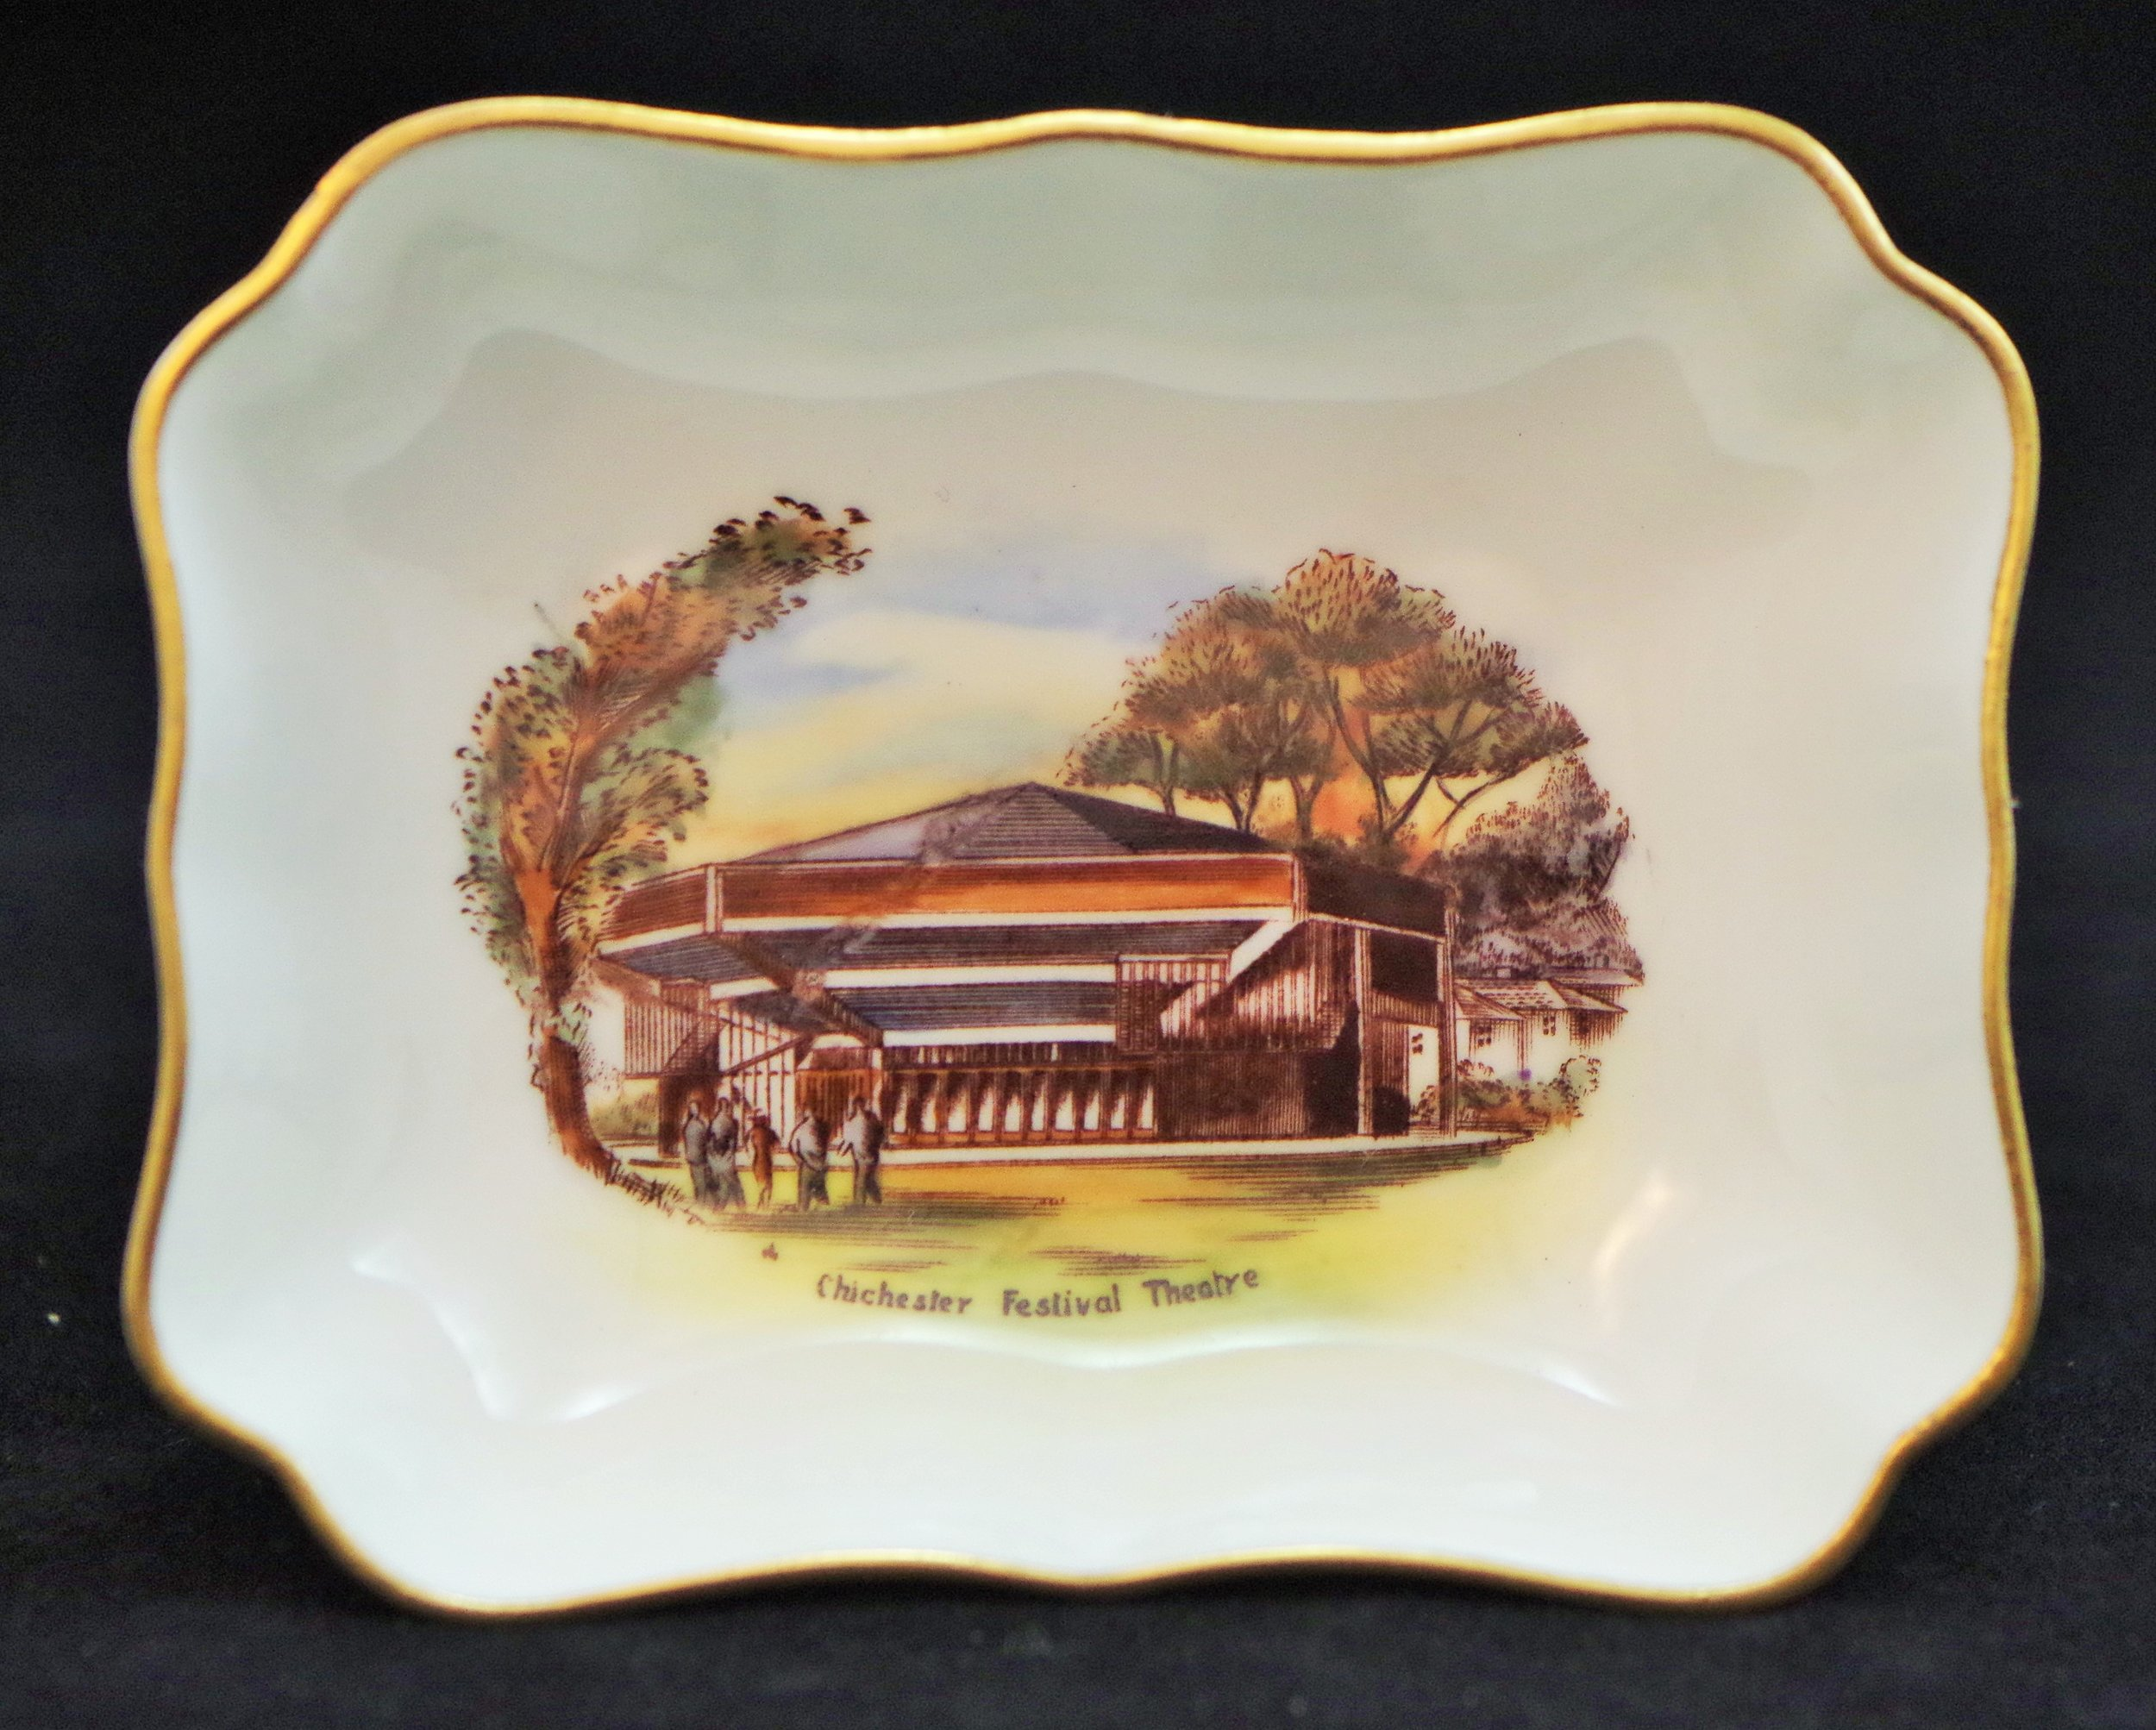 royal-crown-derby-1800-shape-oblong-tray-chichester-festival-theatre